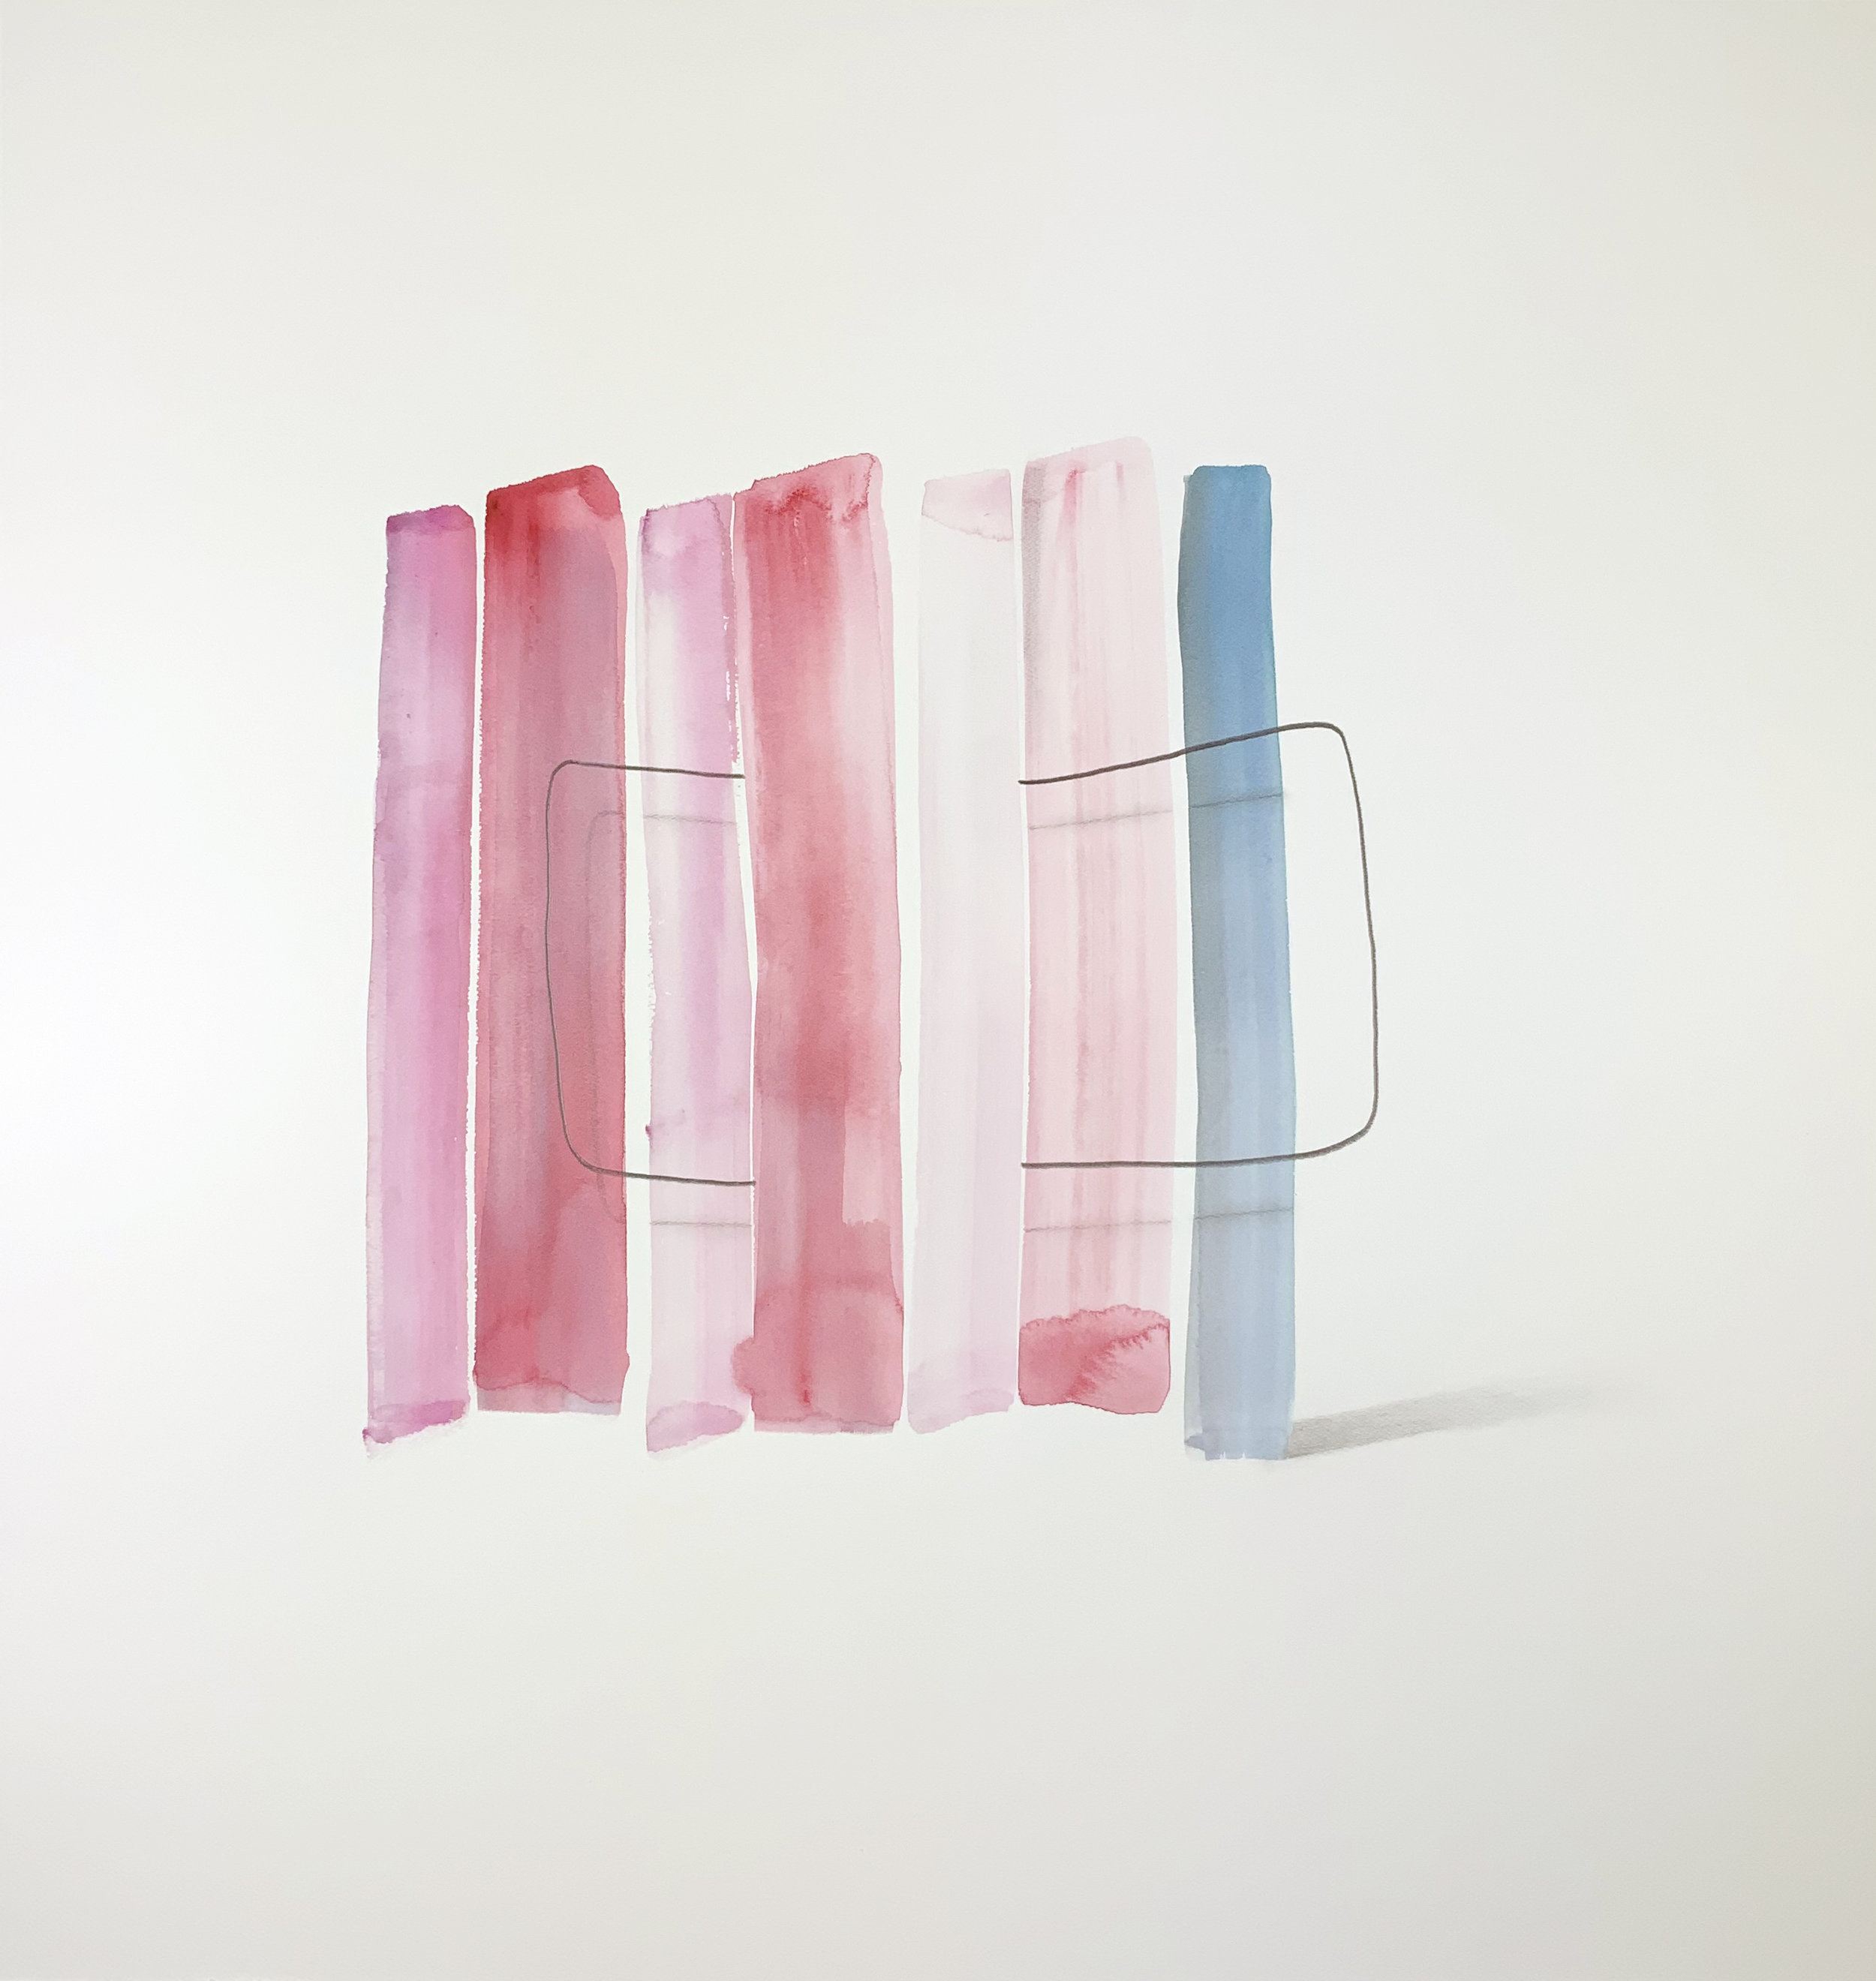 Wesley Berg, Untitled, 2019, Gouache and graphite on paper, 23 x 22in.